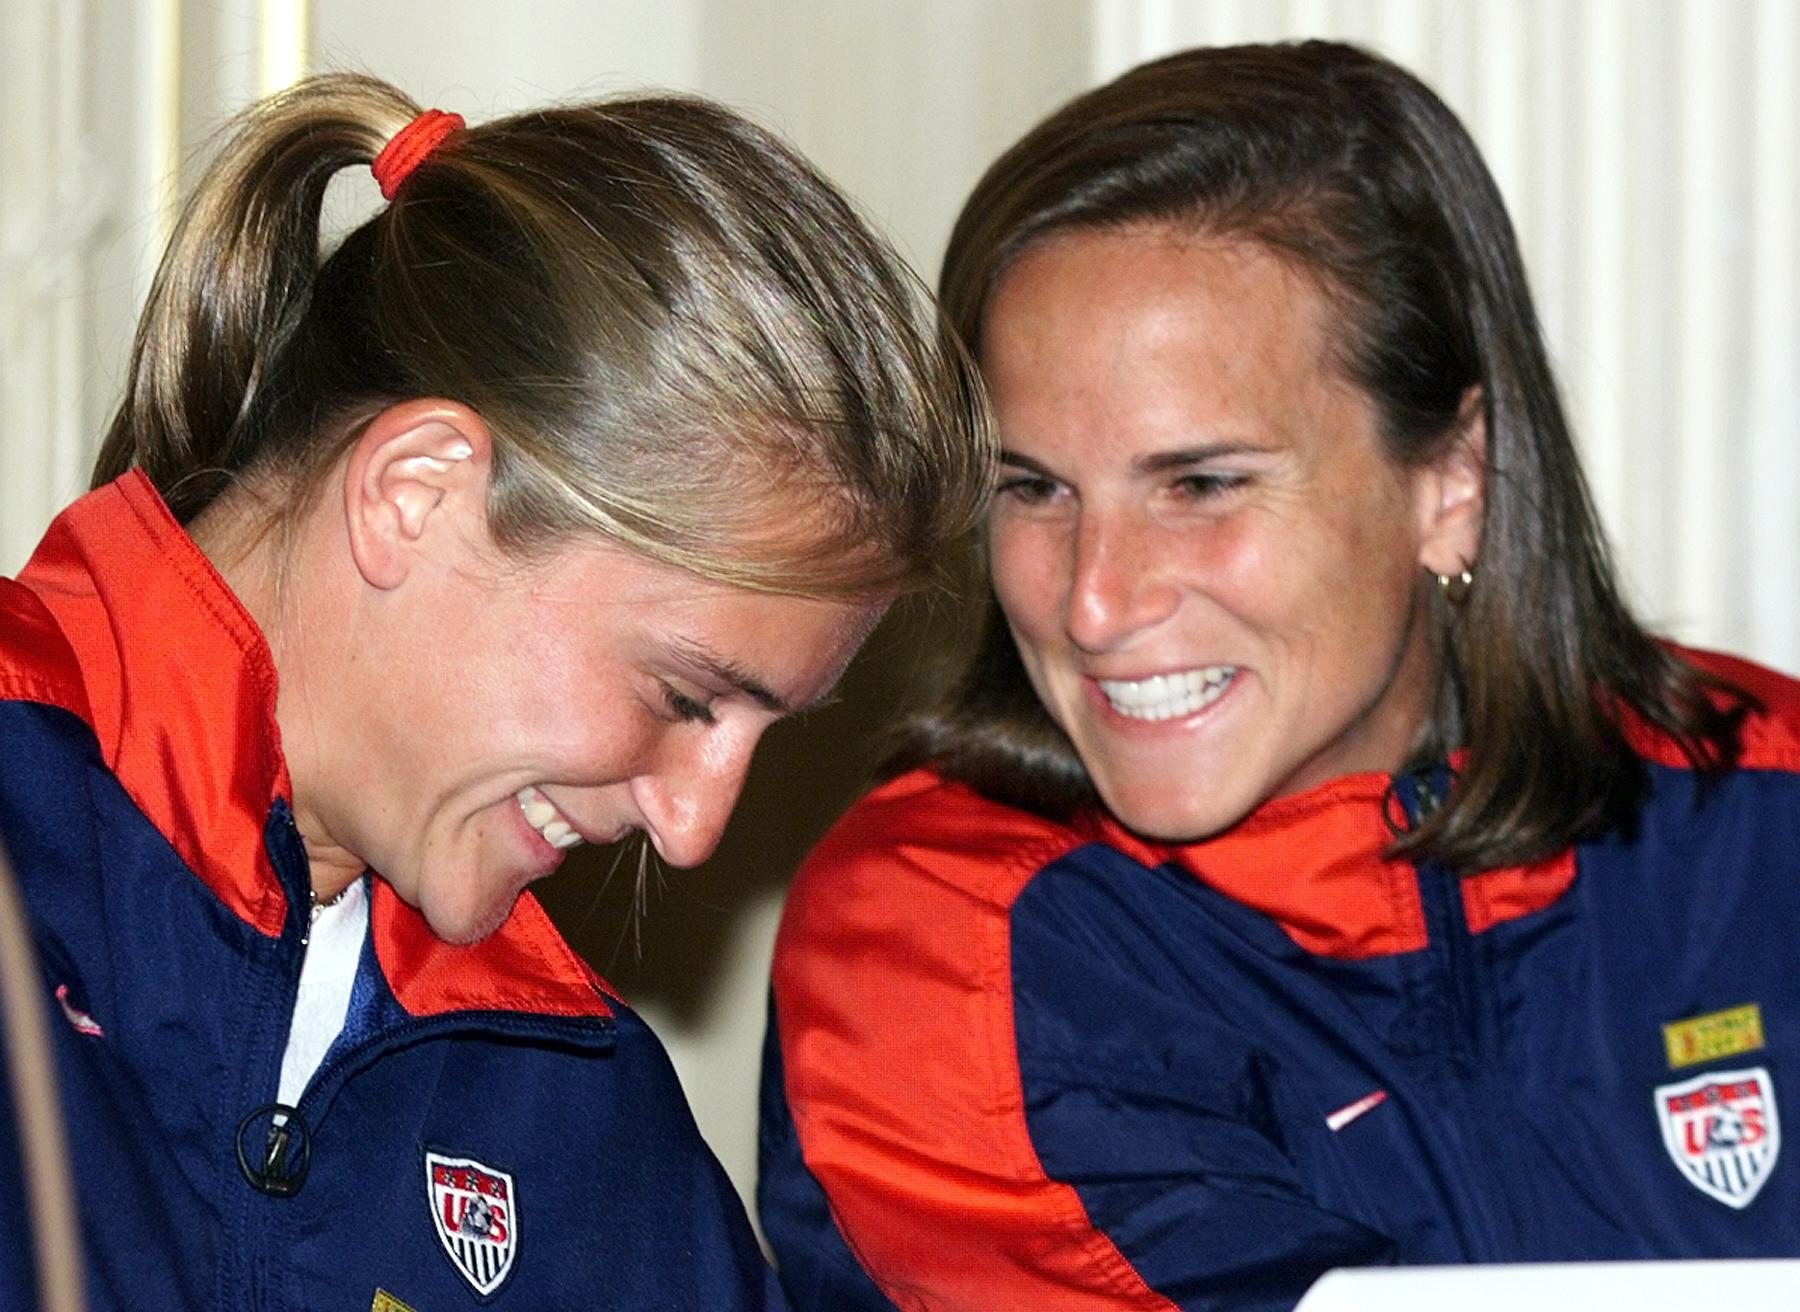 Team USA members Tiffeny Milbrett and Carla Overbeck. (Timothy Clary/AFP/Getty Images)